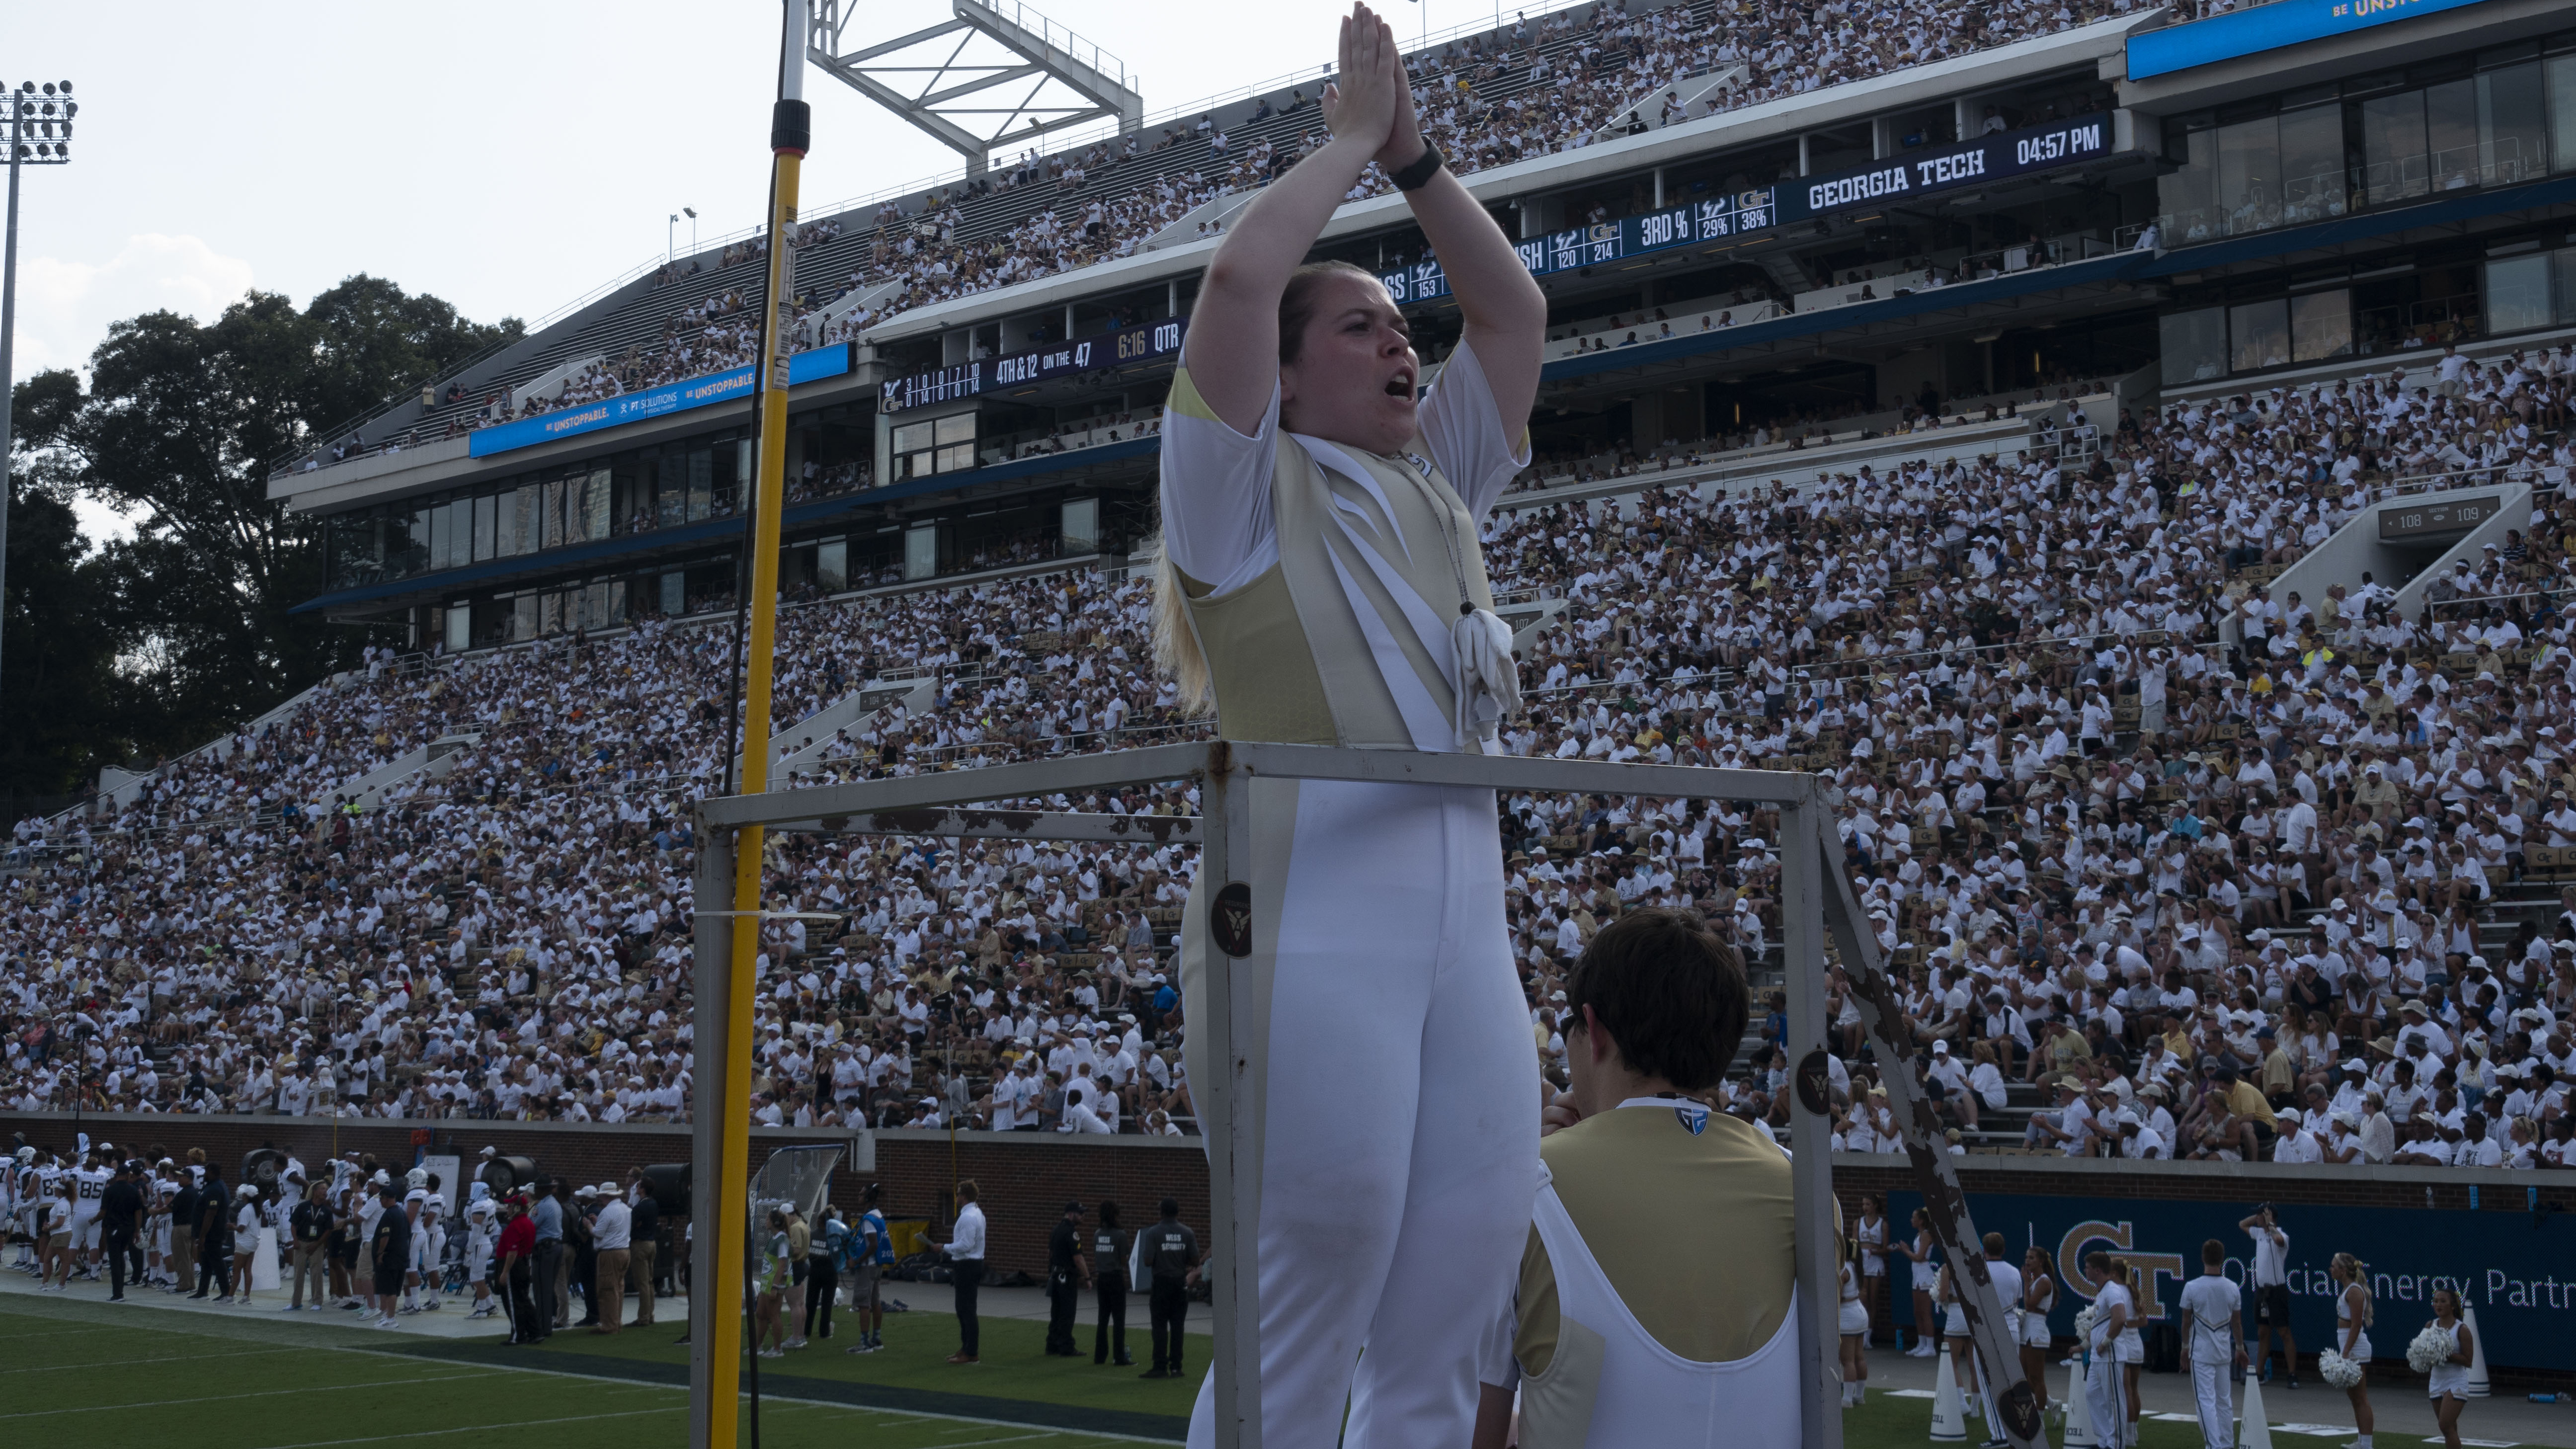 A drum major leading the band at a game.